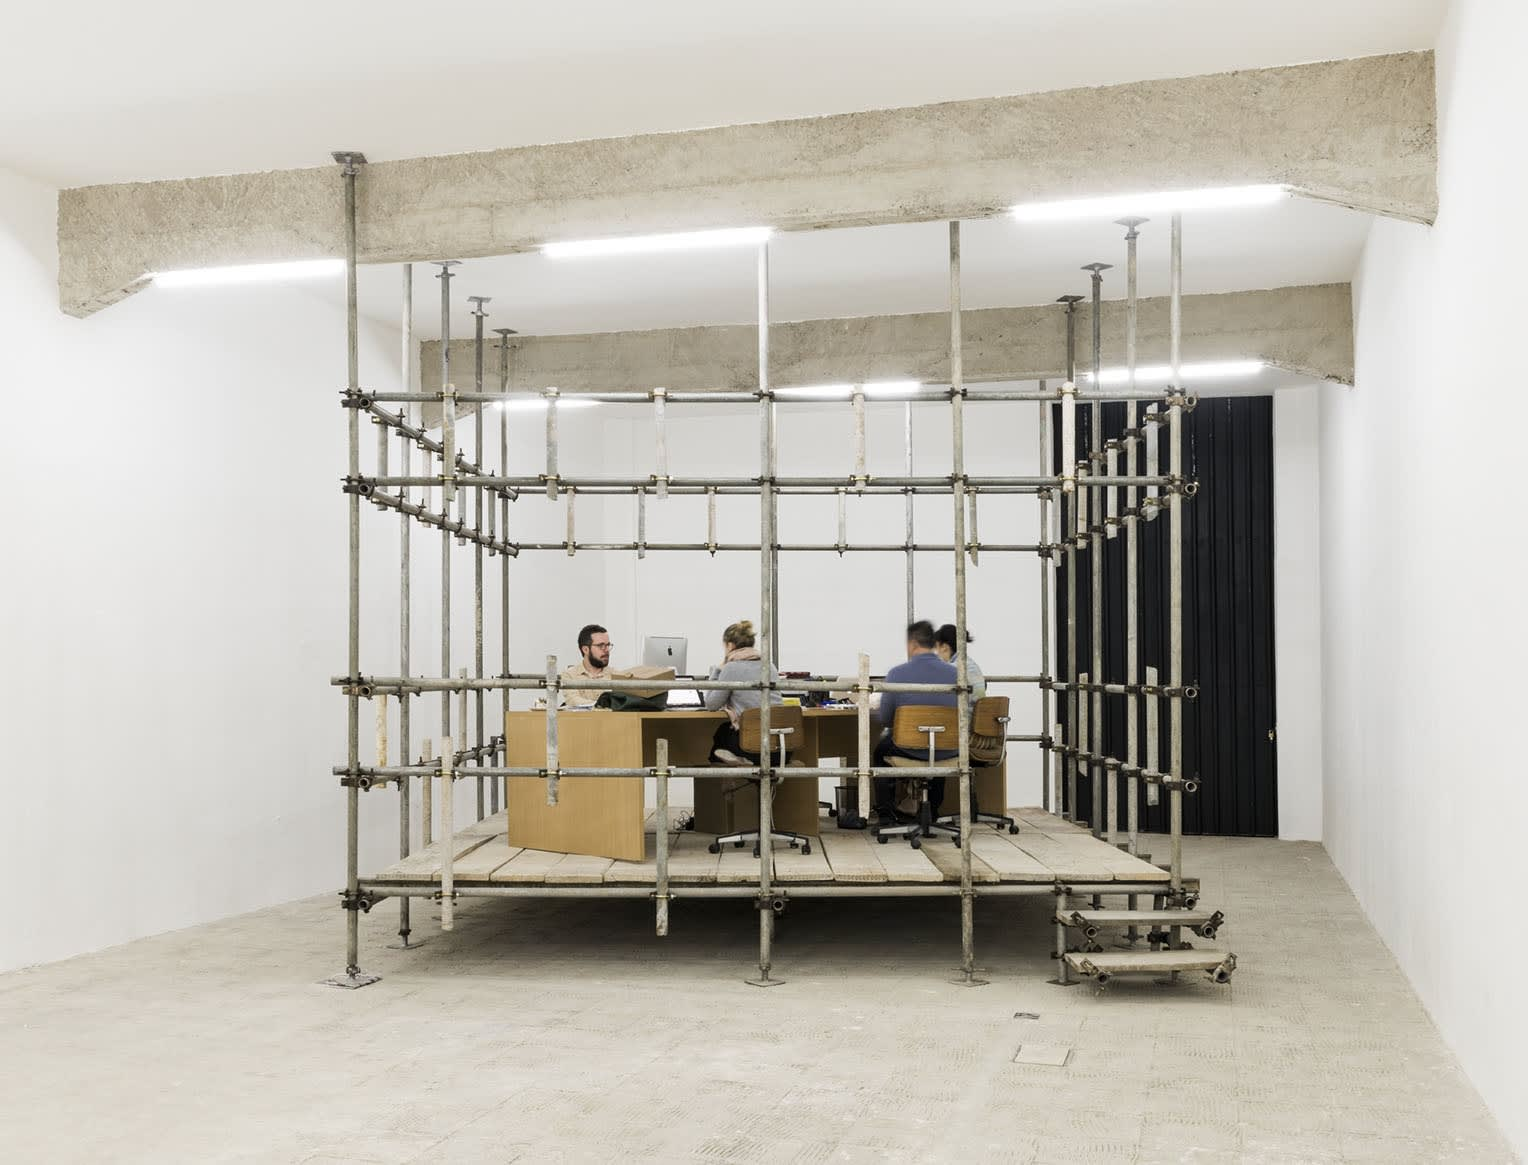 the conductive form of dominant flows exhibition view at Galeria Jaqueline Martins, São Paulo, 2017